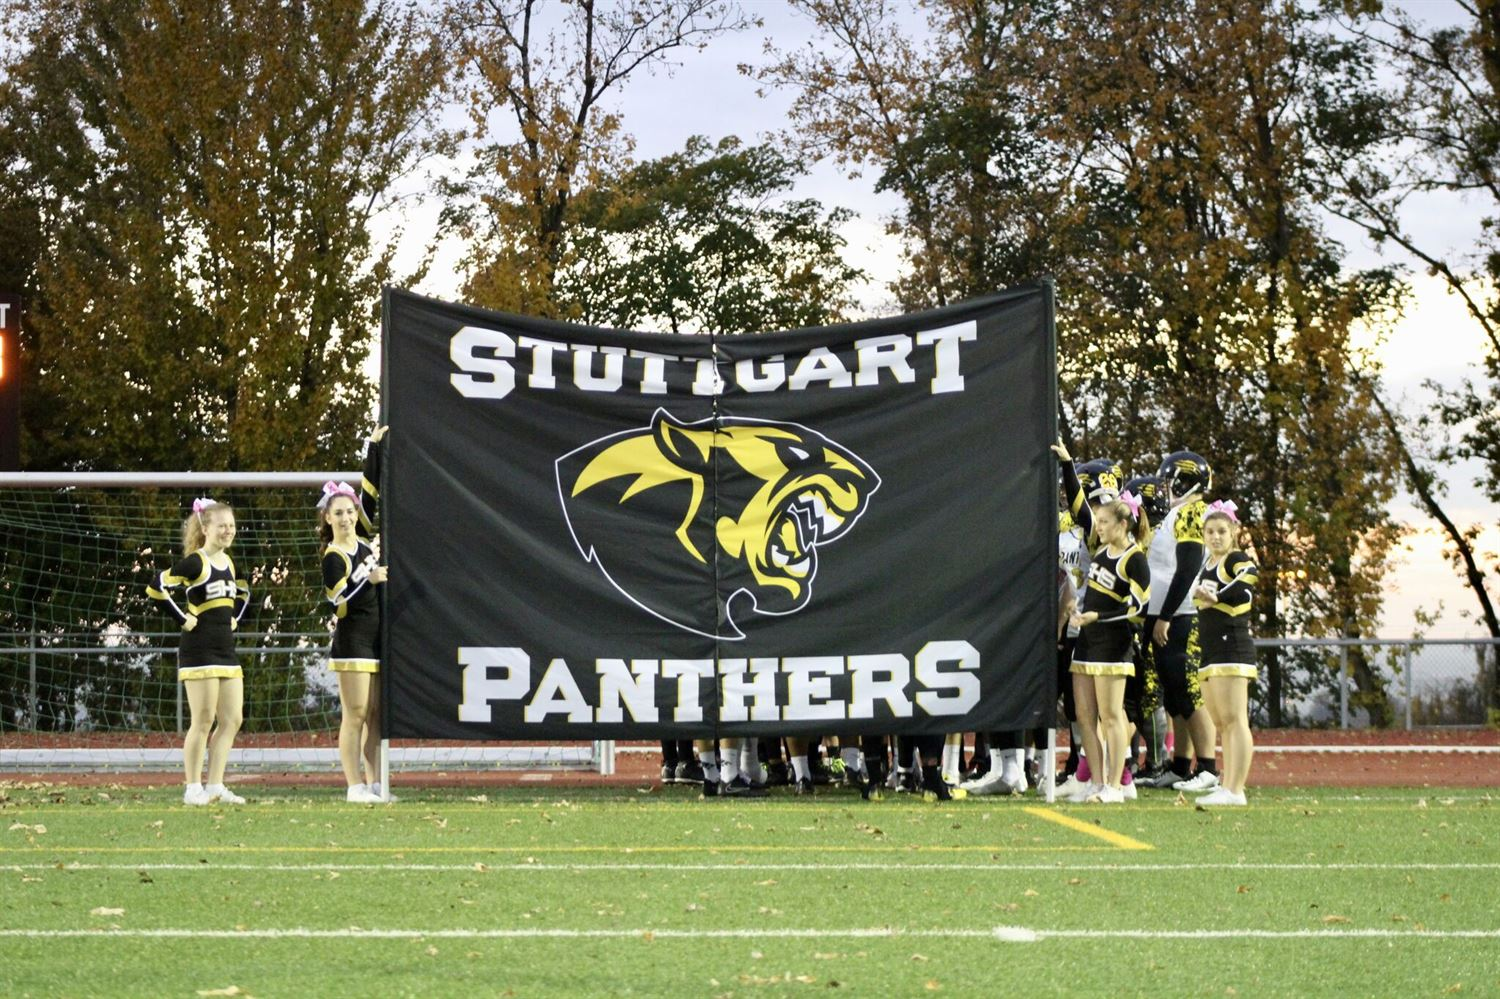 Stuttgart Panthers   DoDEA  Germany    Stuttgart High School   DoDEA     Stuttgart High School   DoDEA  Germany    Stuttgart Panthers   DoDEA   Germany